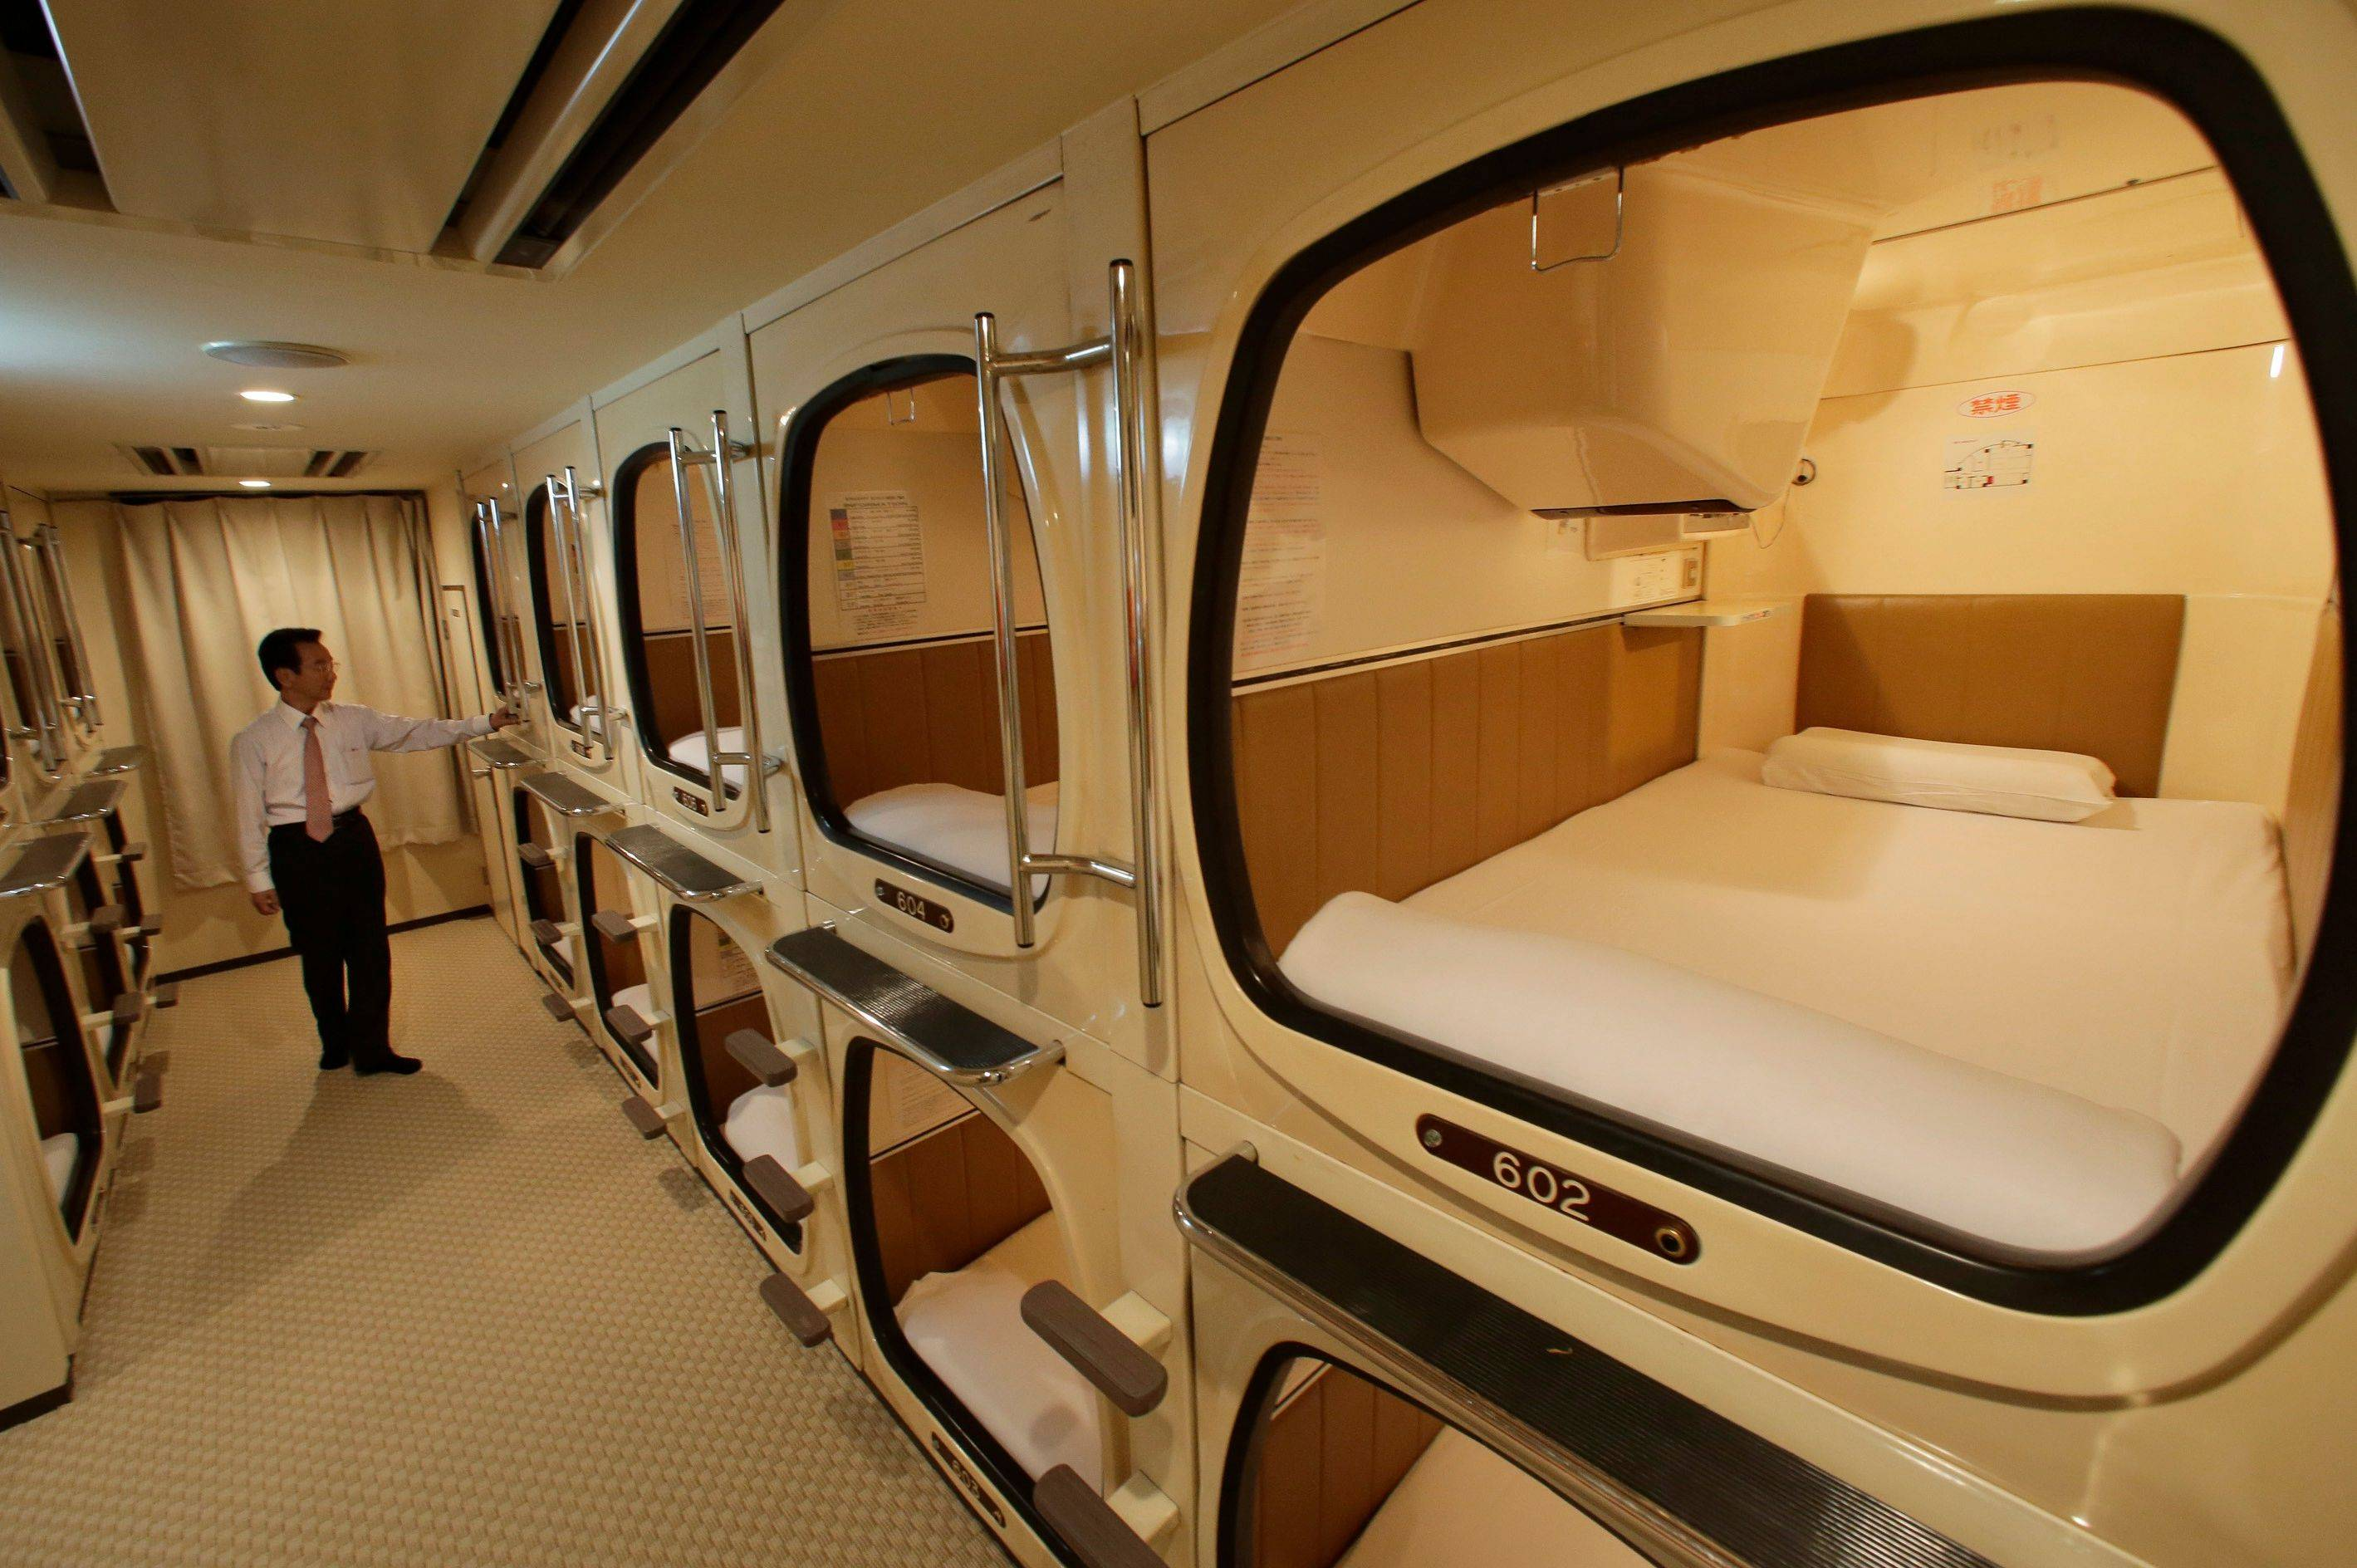 The capsule concept has been around for at least 30 years, starting out as lodging for businessmen working or partying late who missed the last train home and needed a cheap place to crash.